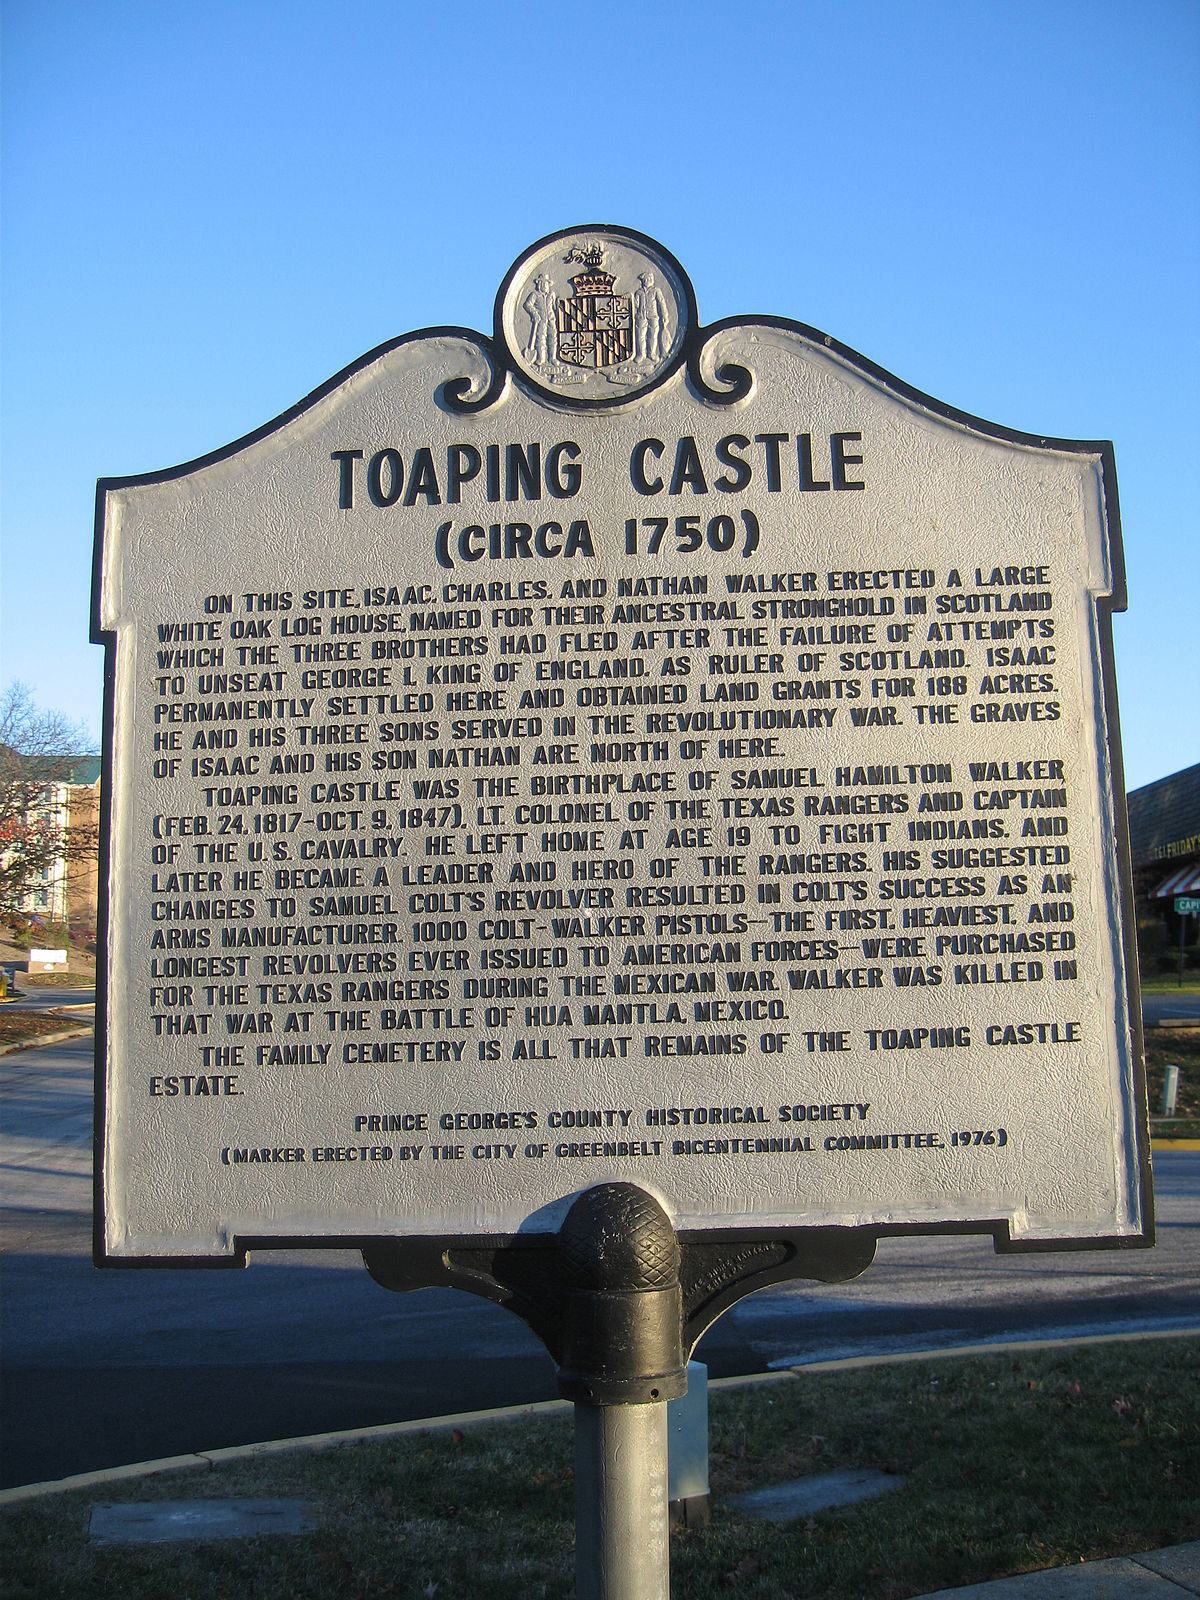 Toaping Castle Wikipedia